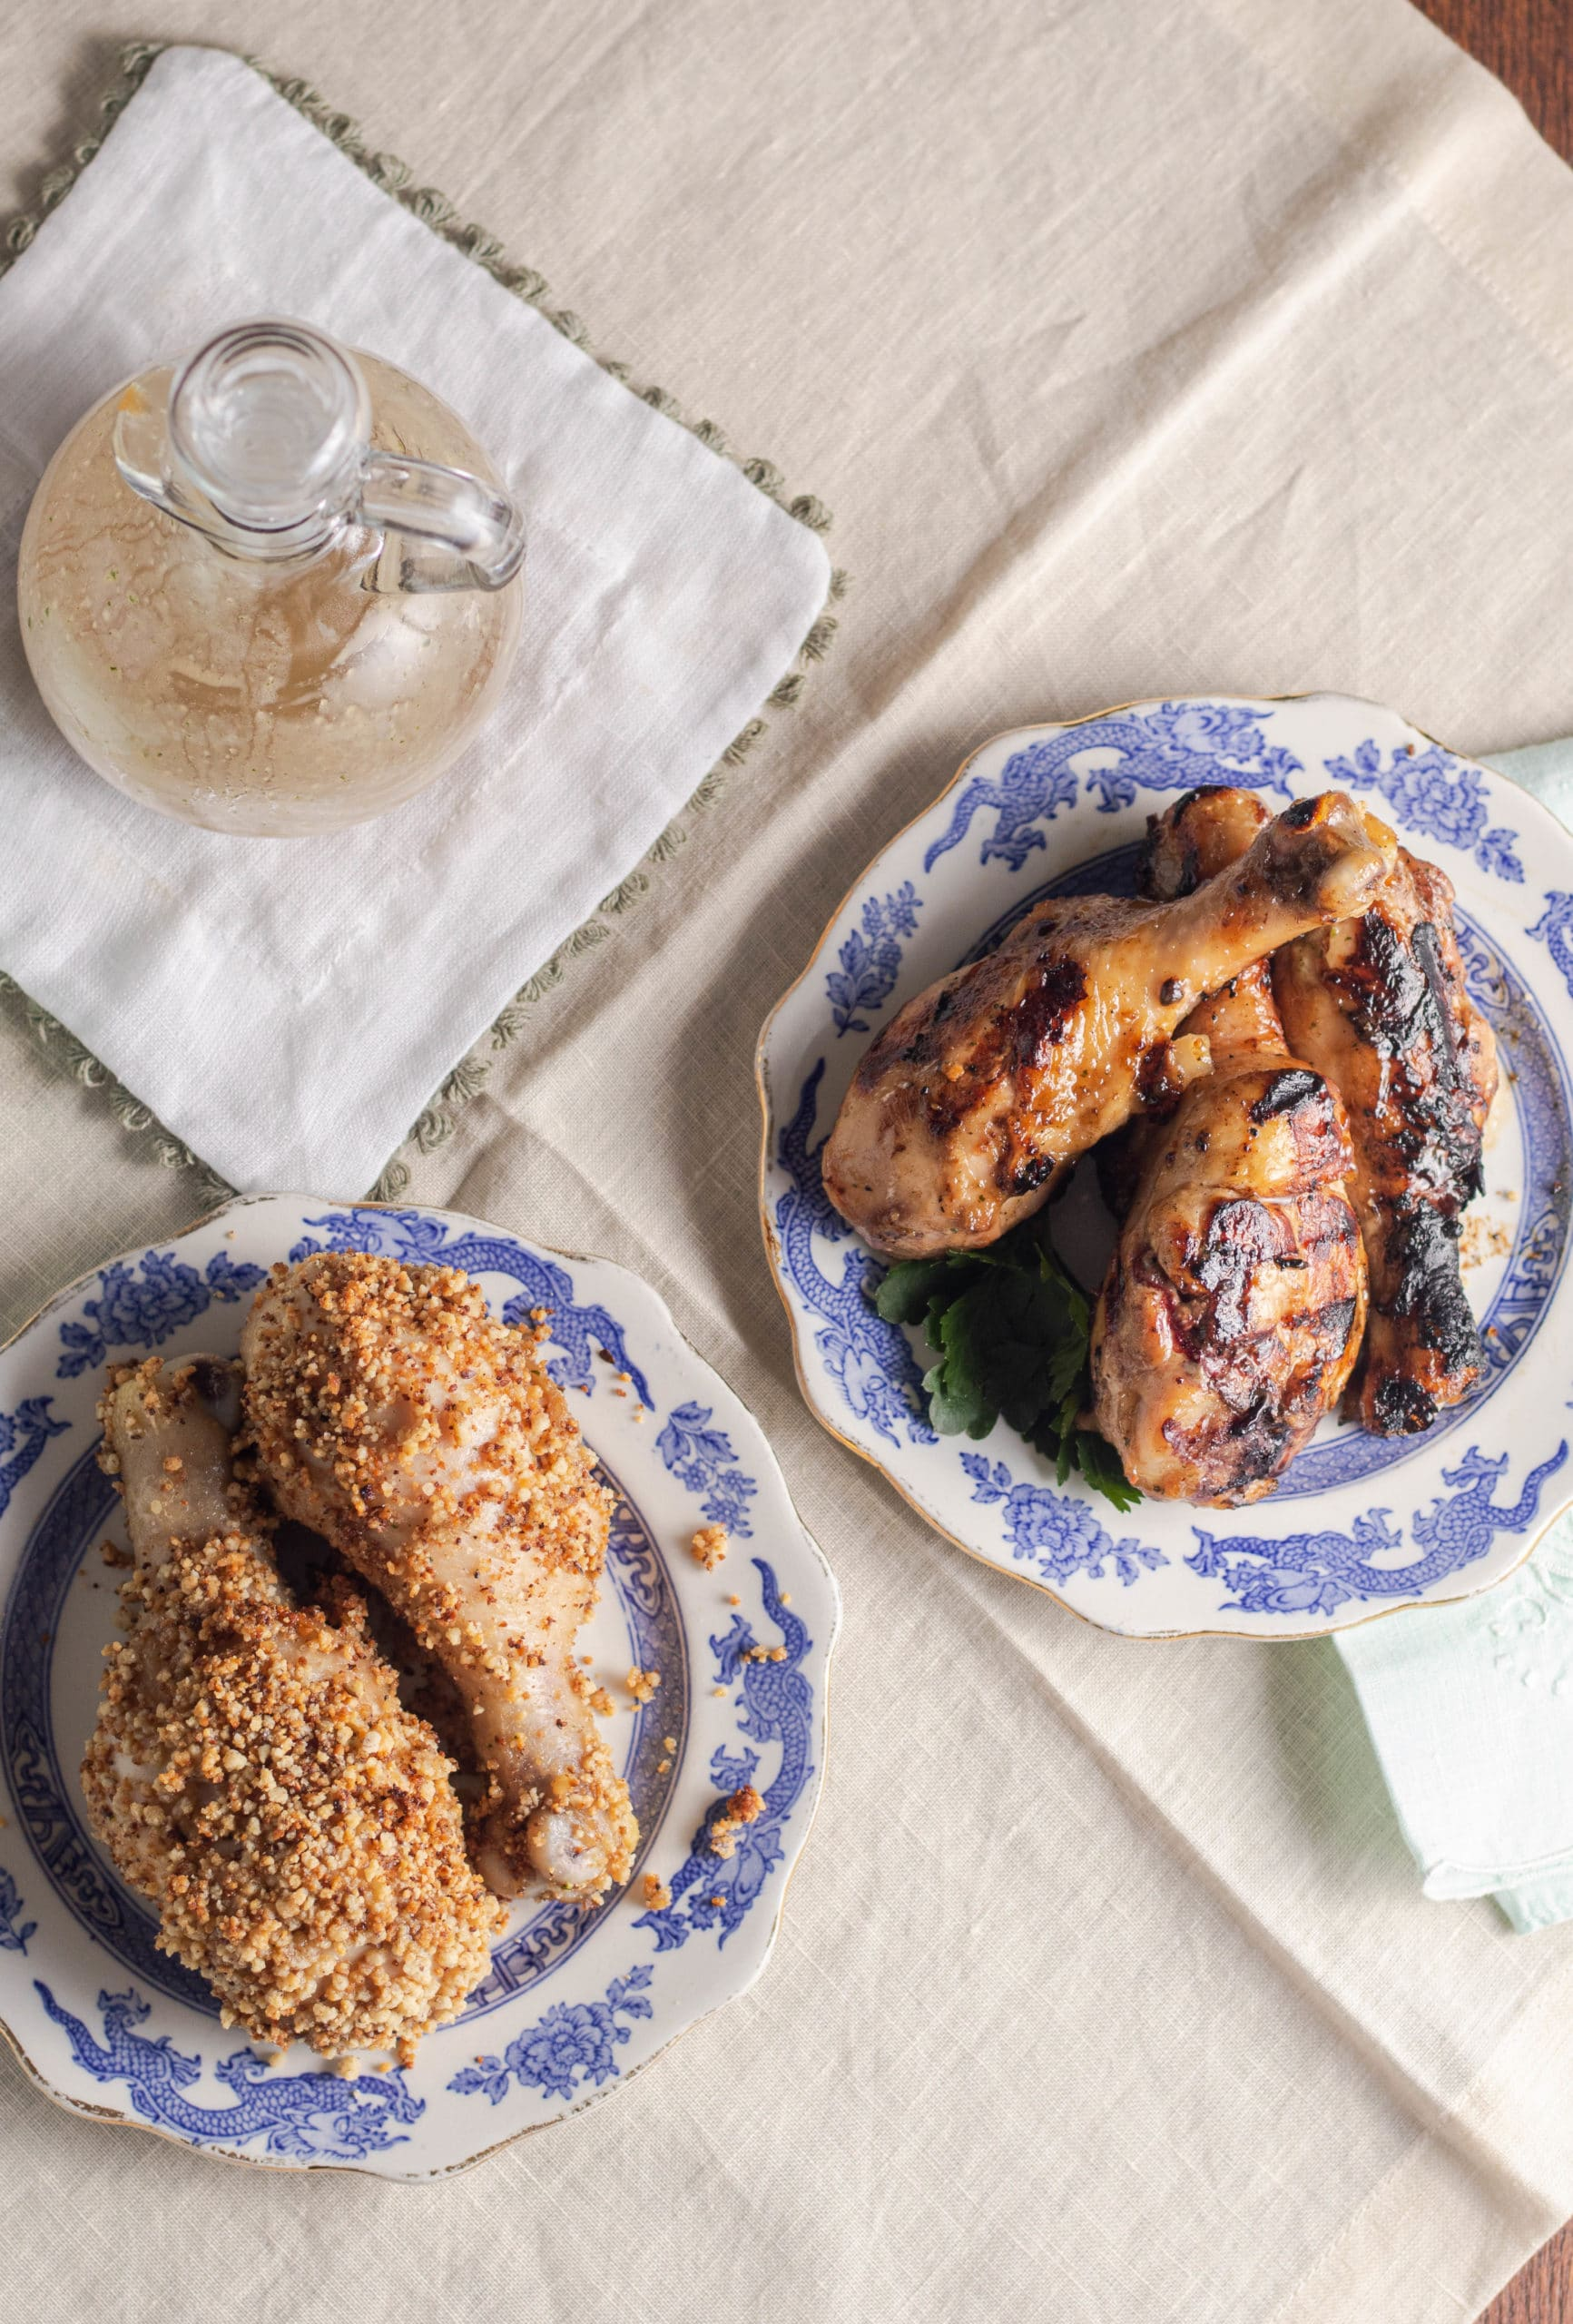 Marinated chicken drumsticks are baked till crispy or grilled.